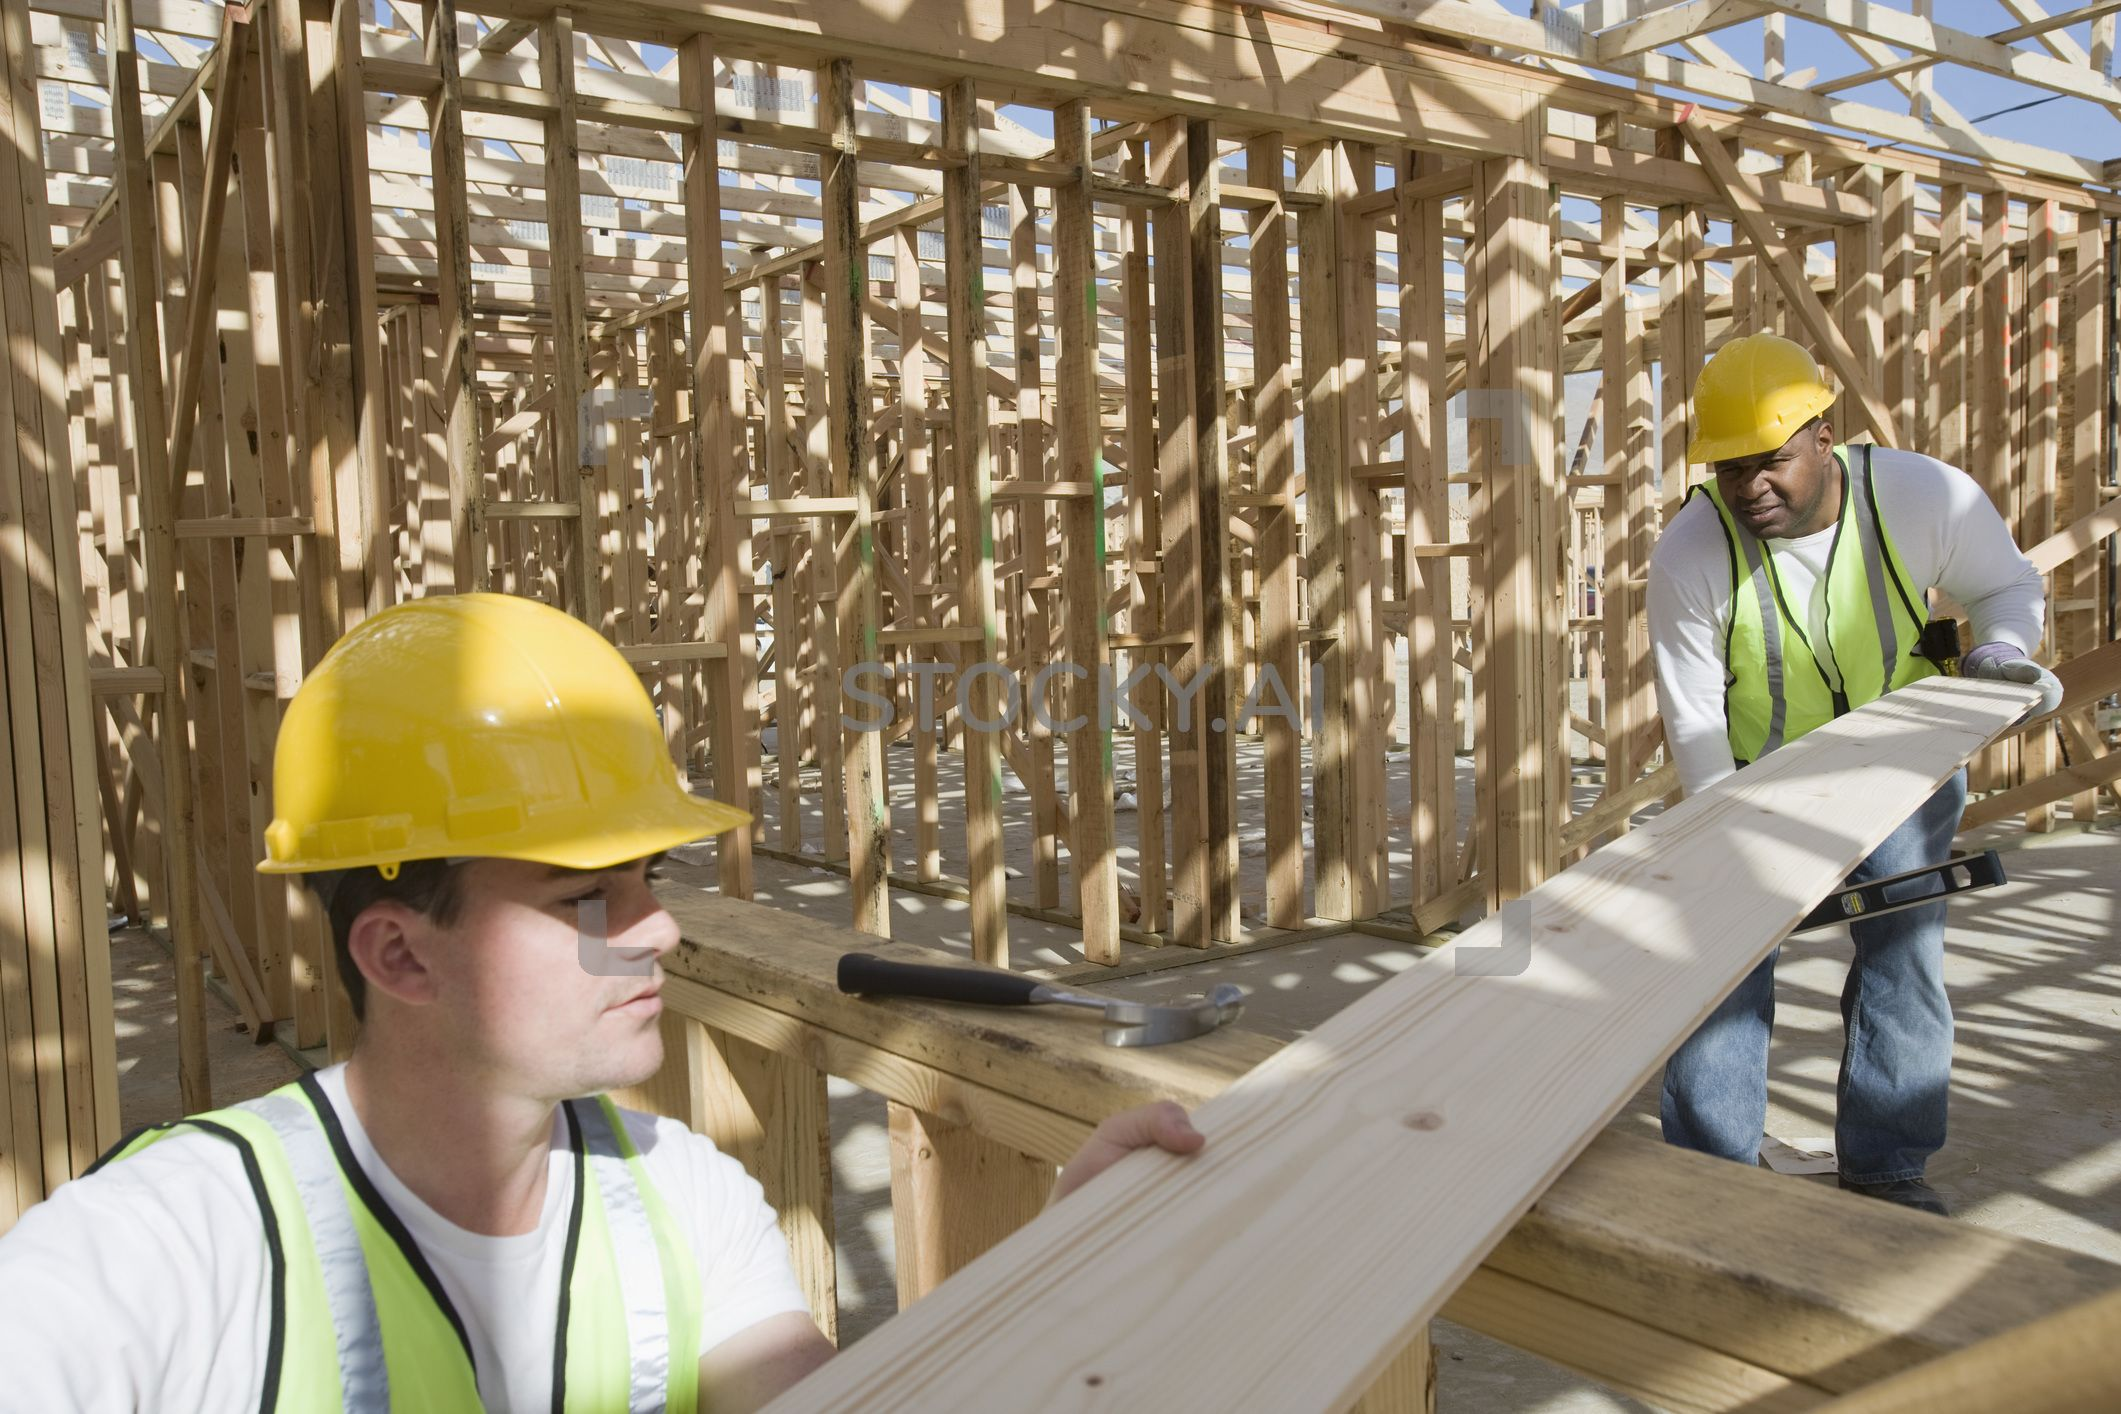 Checkout For The Best Building Construction Job Openings In Uk